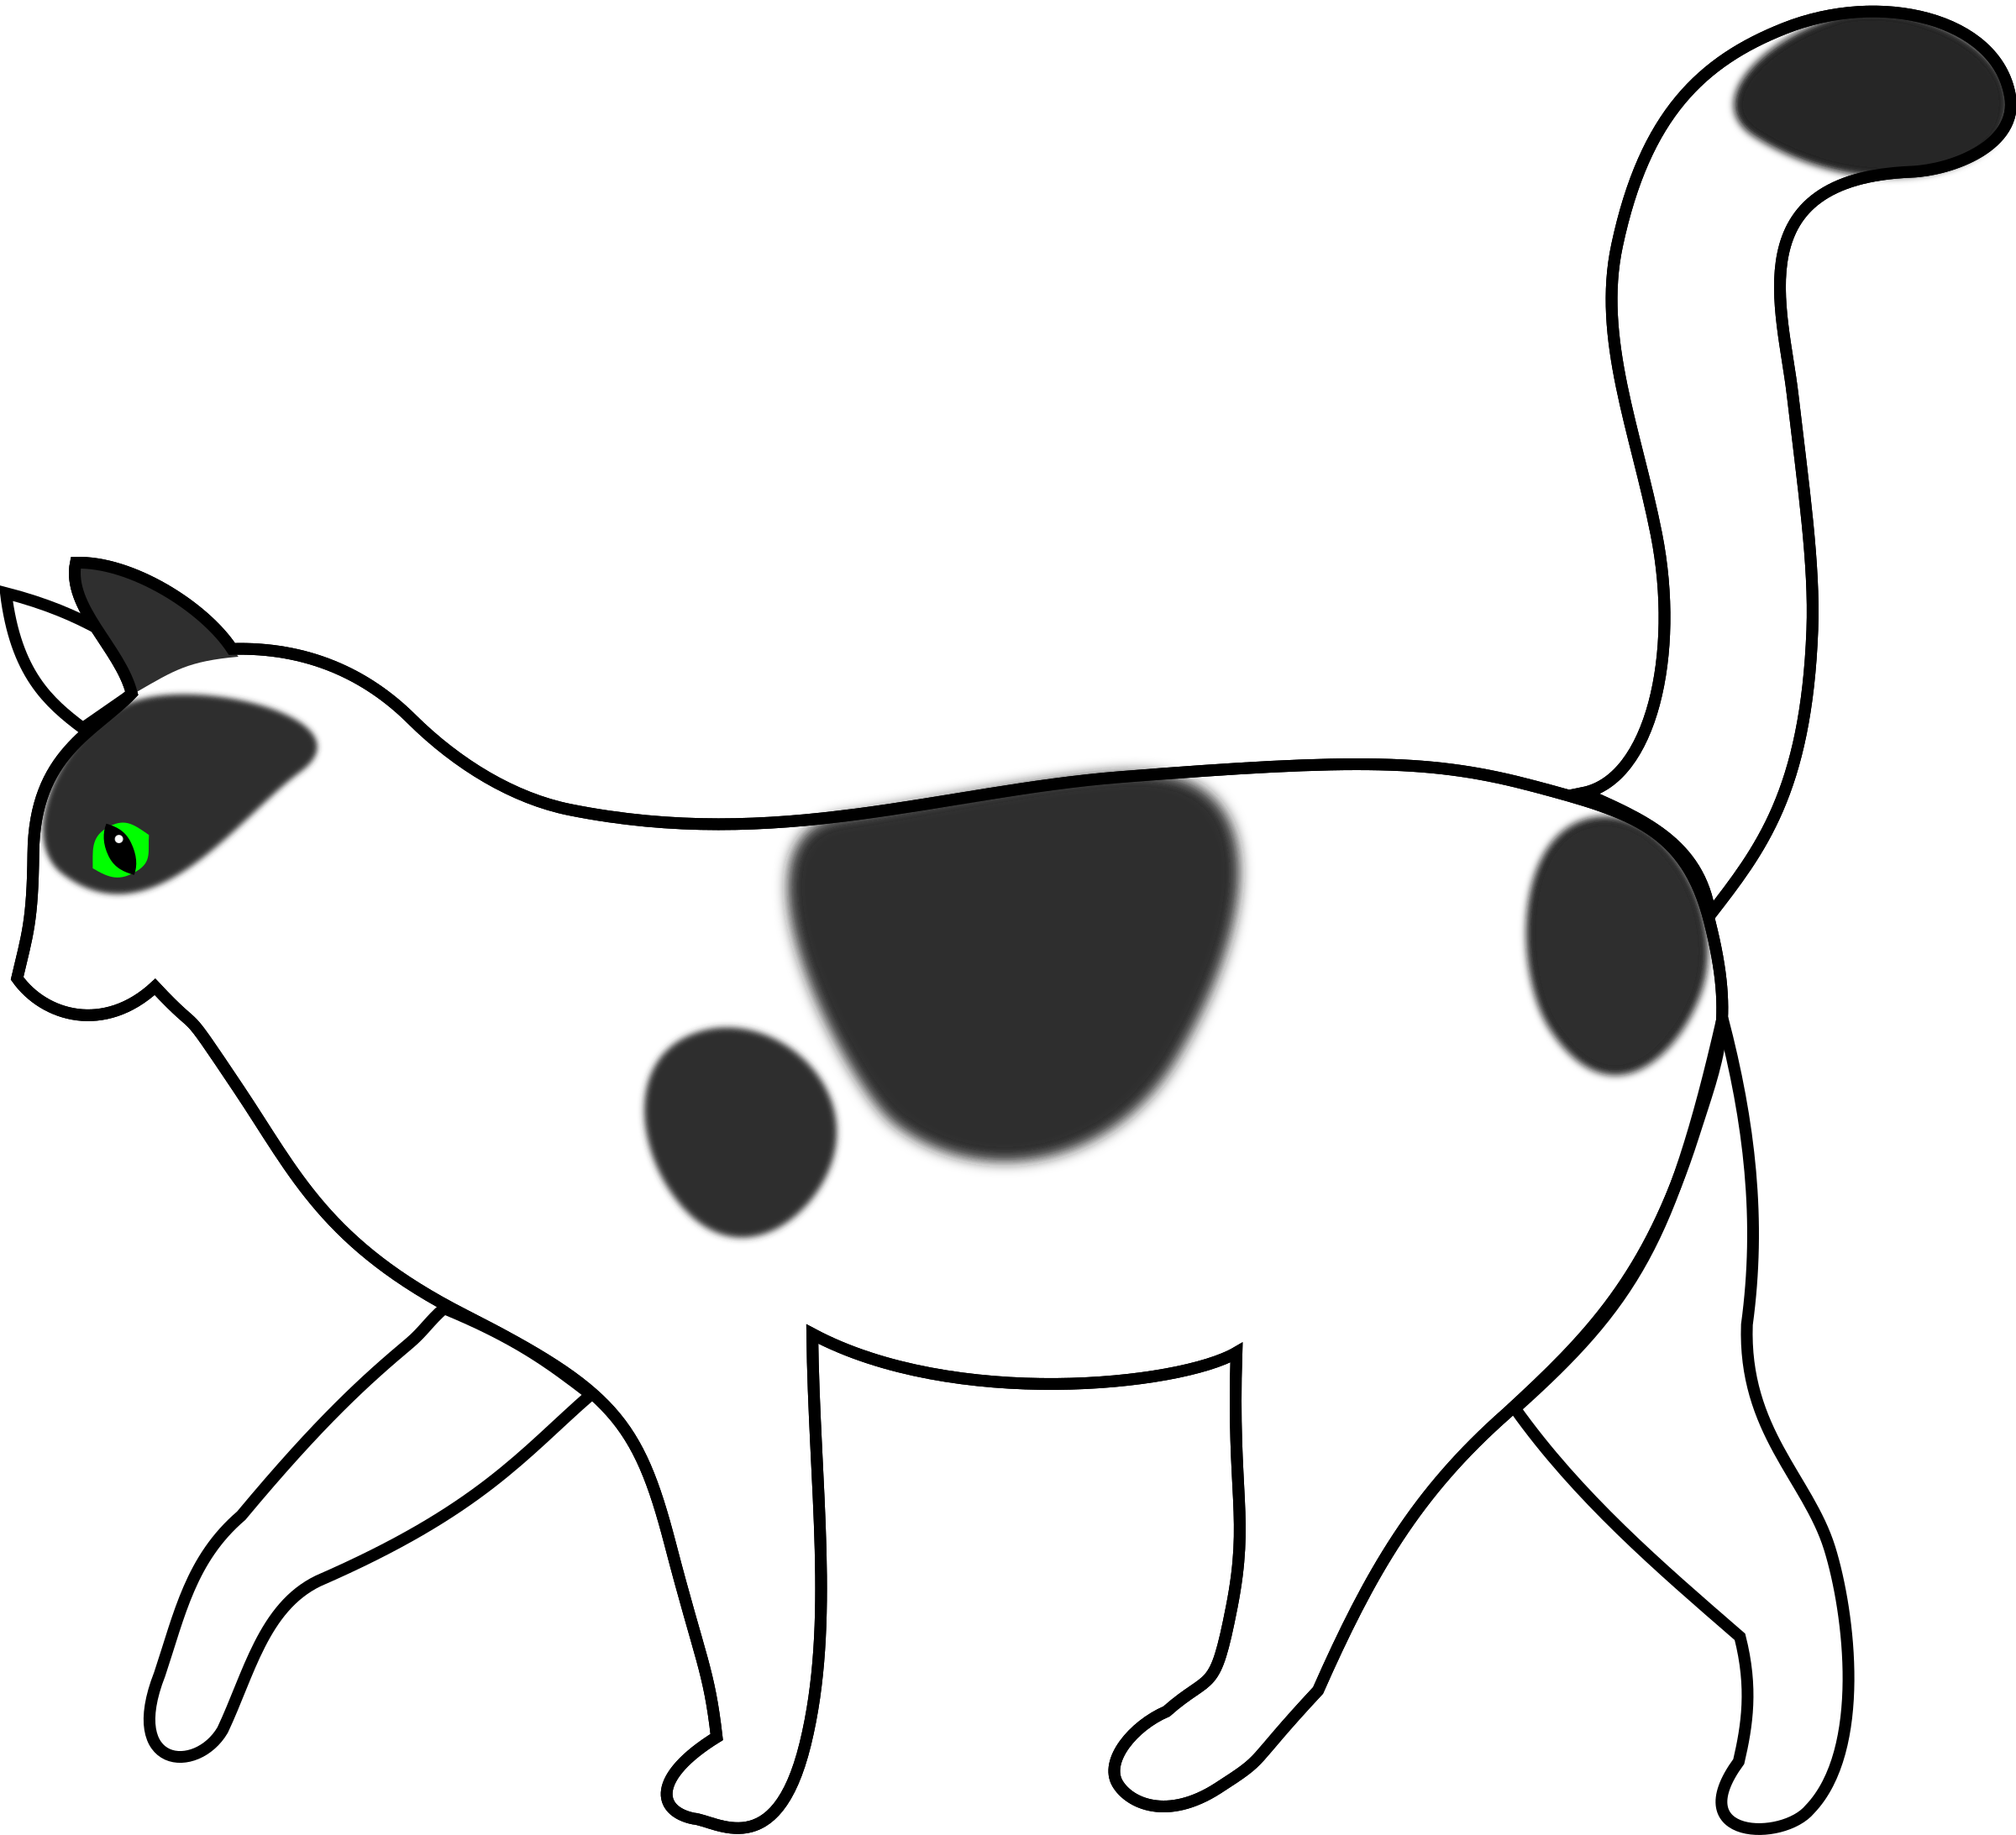 Walking cat clipart graphic free library Clipart - white cat walking graphic free library